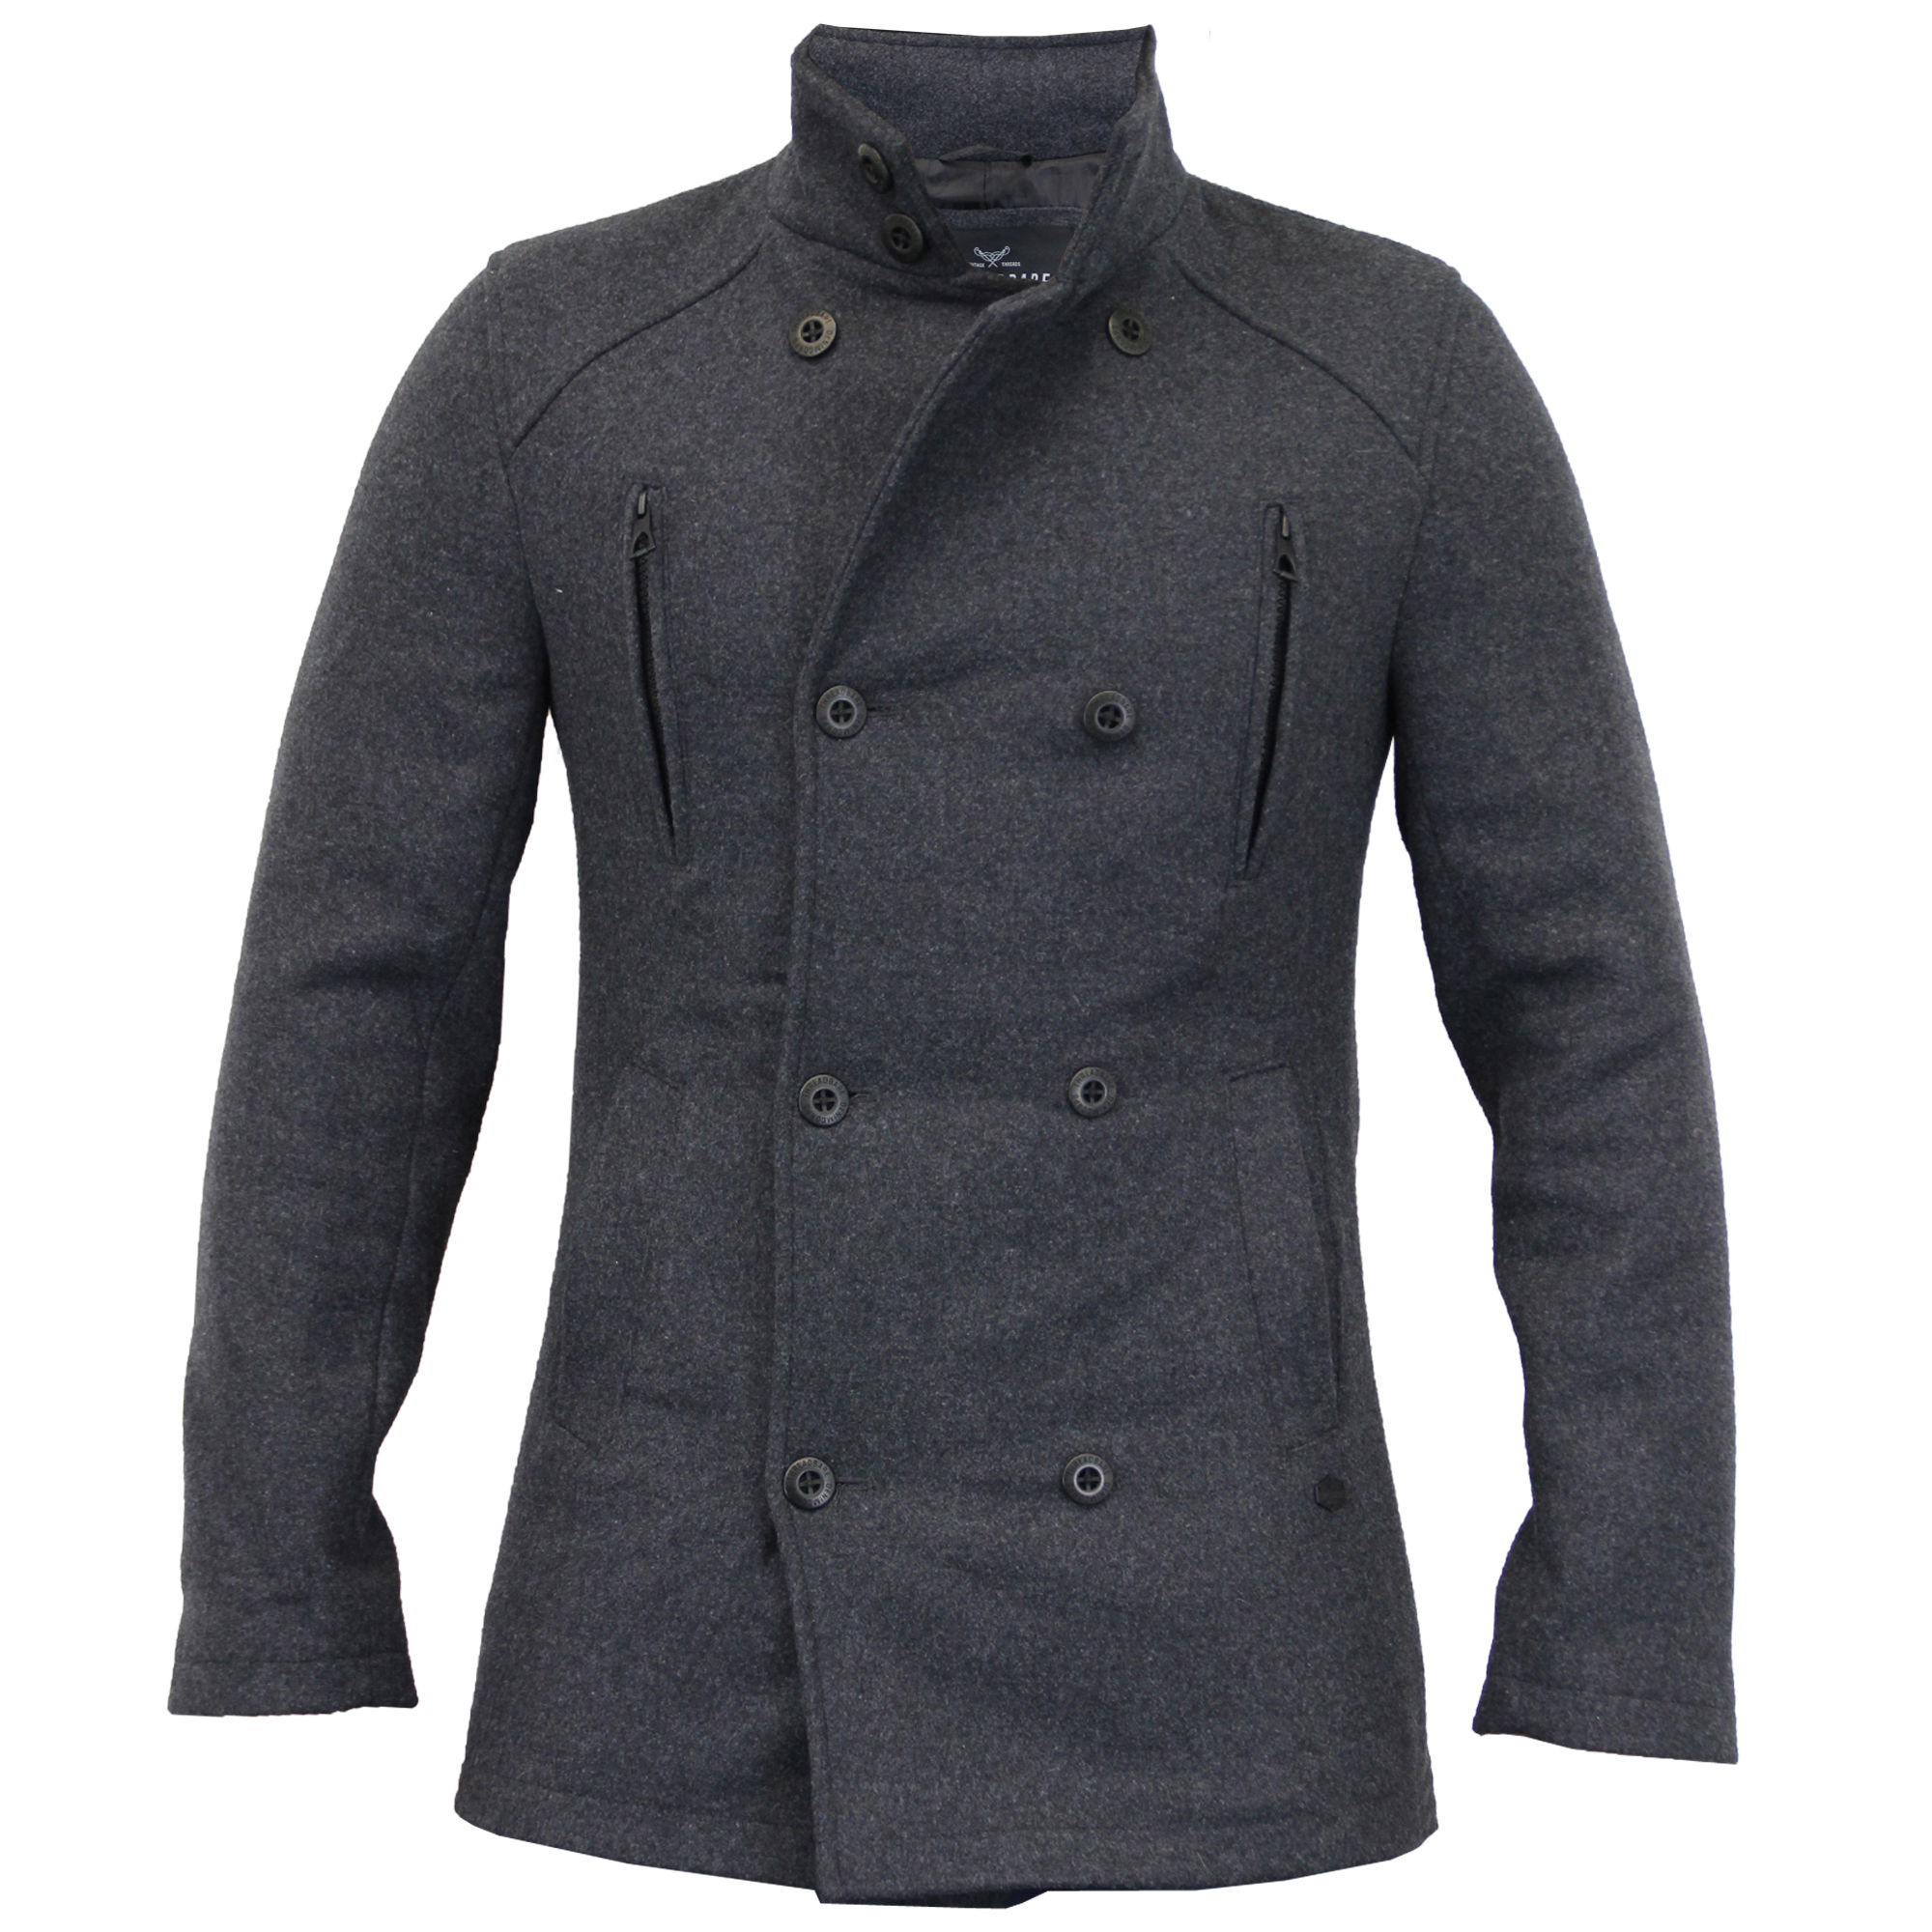 Mens-Wool-Mix-Jacket-Threadbare-Coat-Double-Breasted-Duffle-Lined-Winter-New thumbnail 2